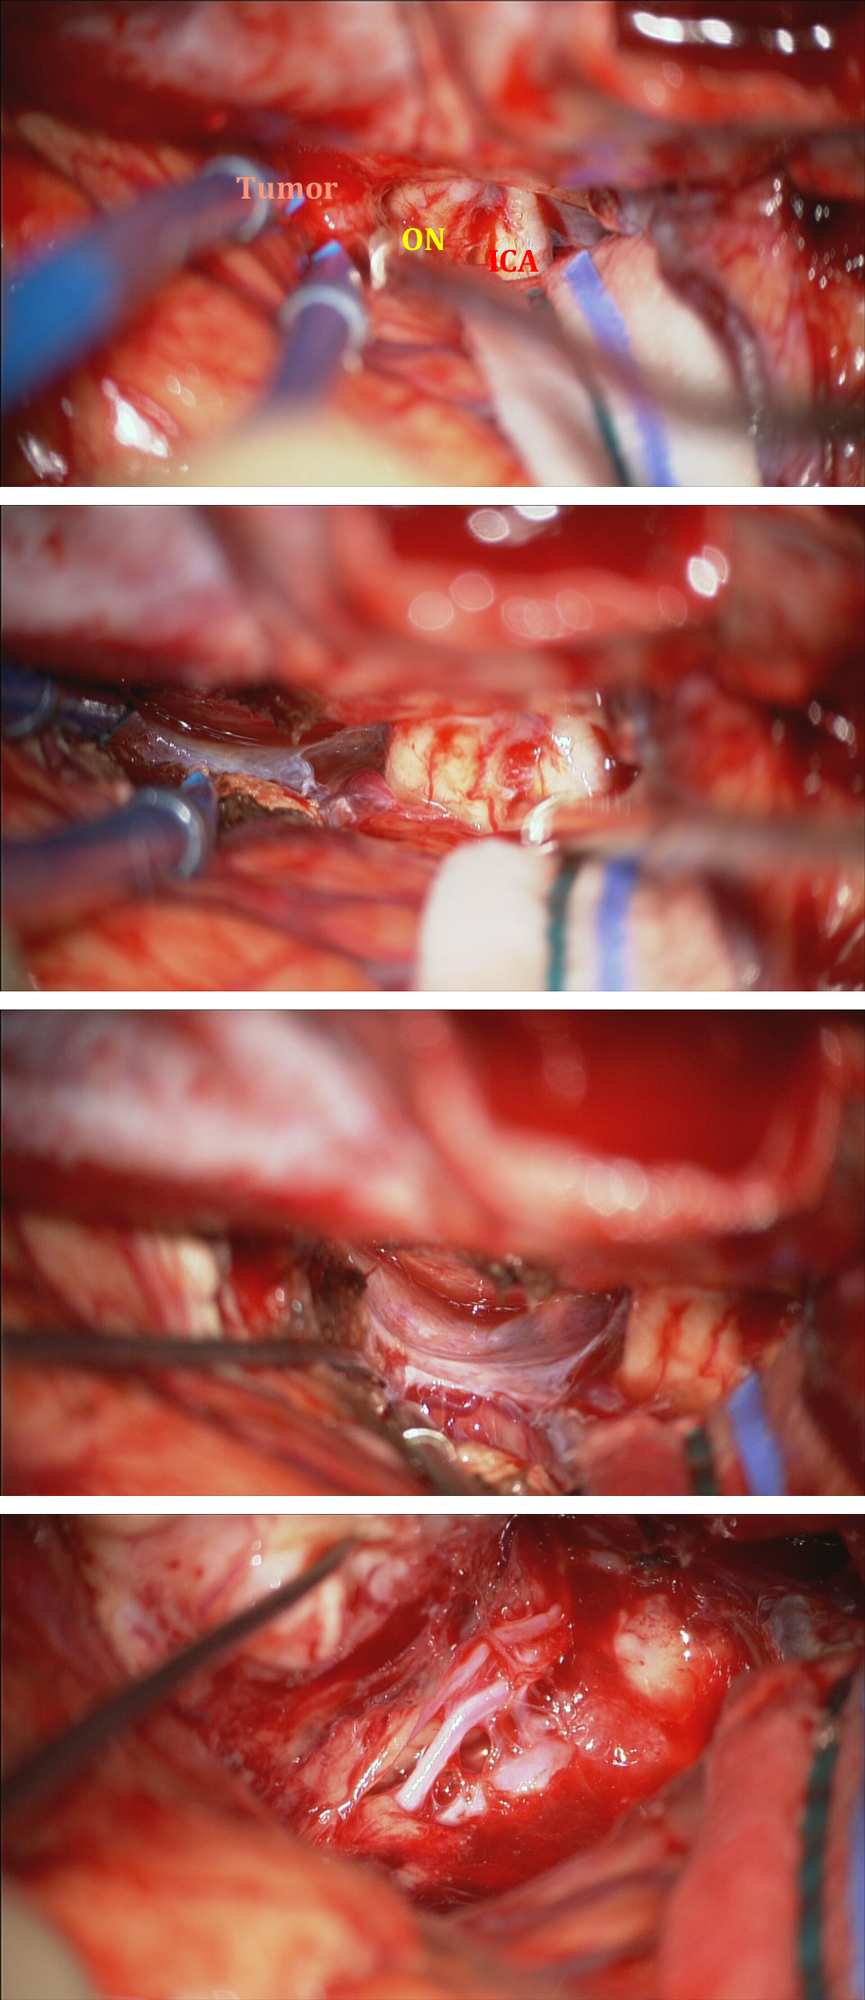 Figure 16: The intraoperative findings via a right-sided pterional cranitomy are reviewed. The first photo demonstrates the neurovascular anatomy in relation to the posterior border of the tumor. The lateral subfrontal trajectory allows early identification of the tumor base relative to the optic nerve (ON) and carotid artery (ICA). The tumor is devascularized along its base while protecting the optic nerve and ICA (second row). The base of the tumor is completely disconnected until the contralateral orbital roof and the pial surfaces of contralateral subfrontal region are evident (third row). After the tumor is debulked and removed  piecemeal , the anterior cerebral arteries and their associated branching vessels are dissected from the posterior tumor capsule.